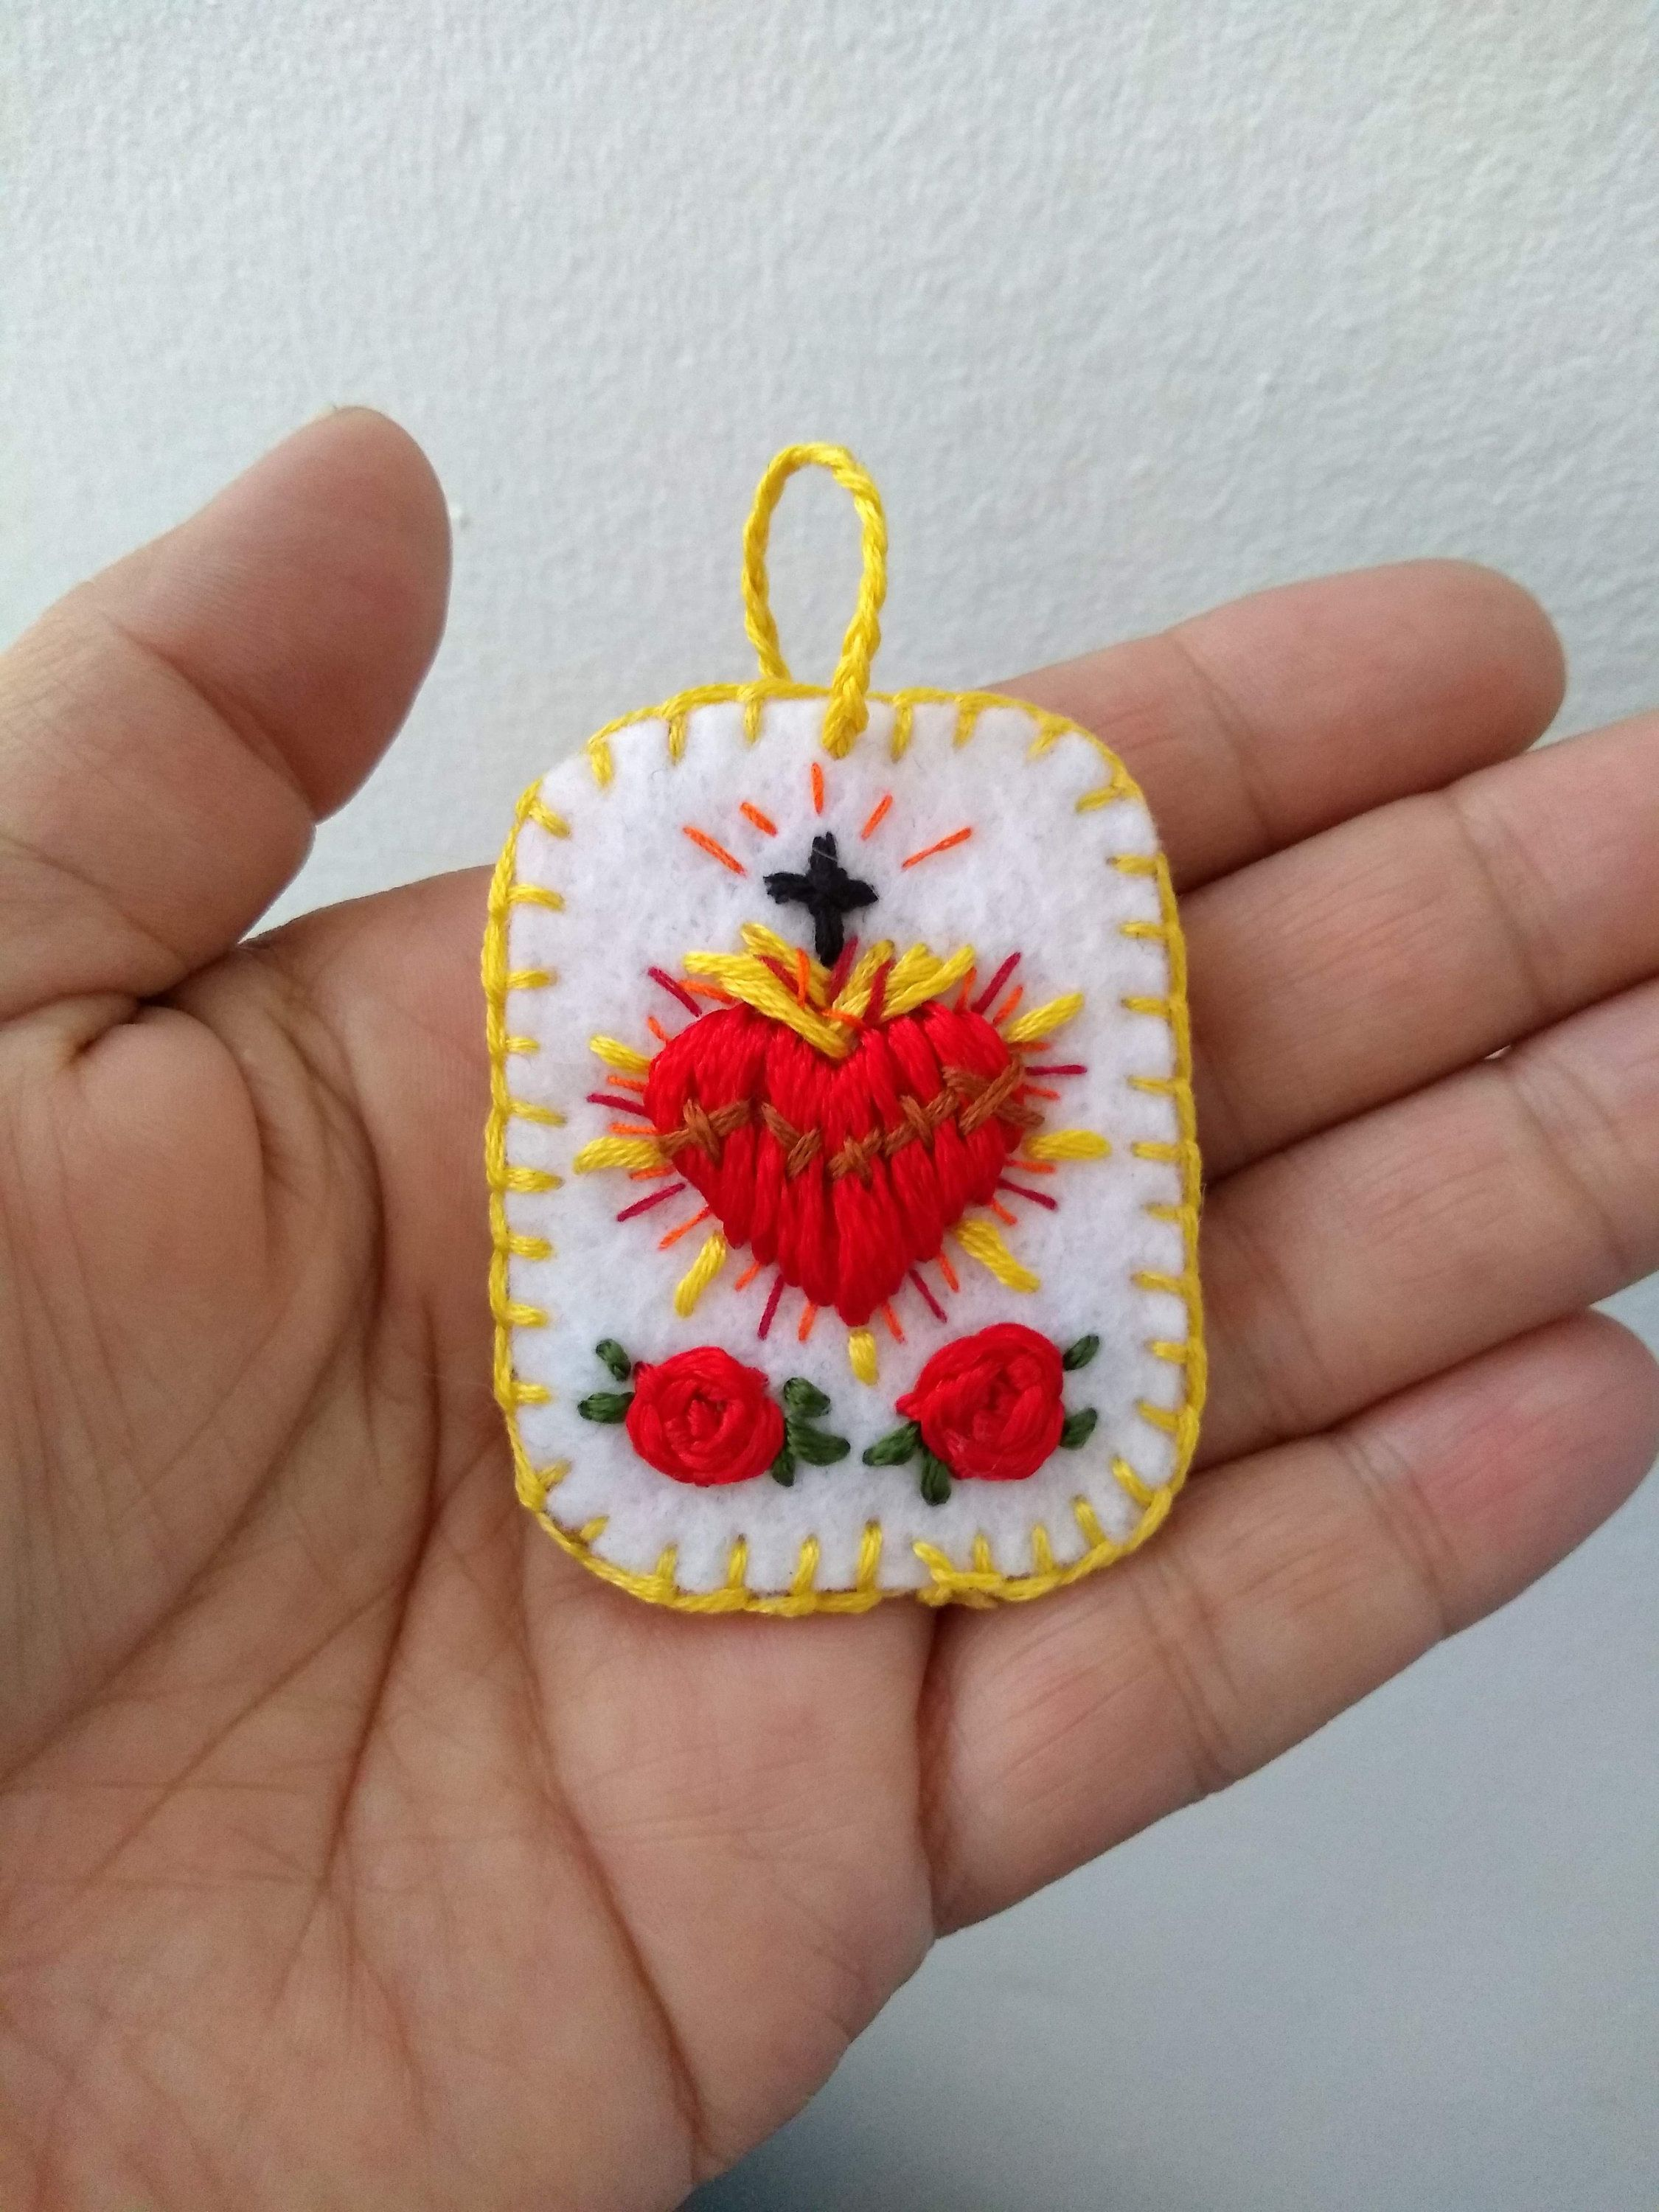 Embroidered Sacred Heart Detente Sagrado Corazon Sagrado